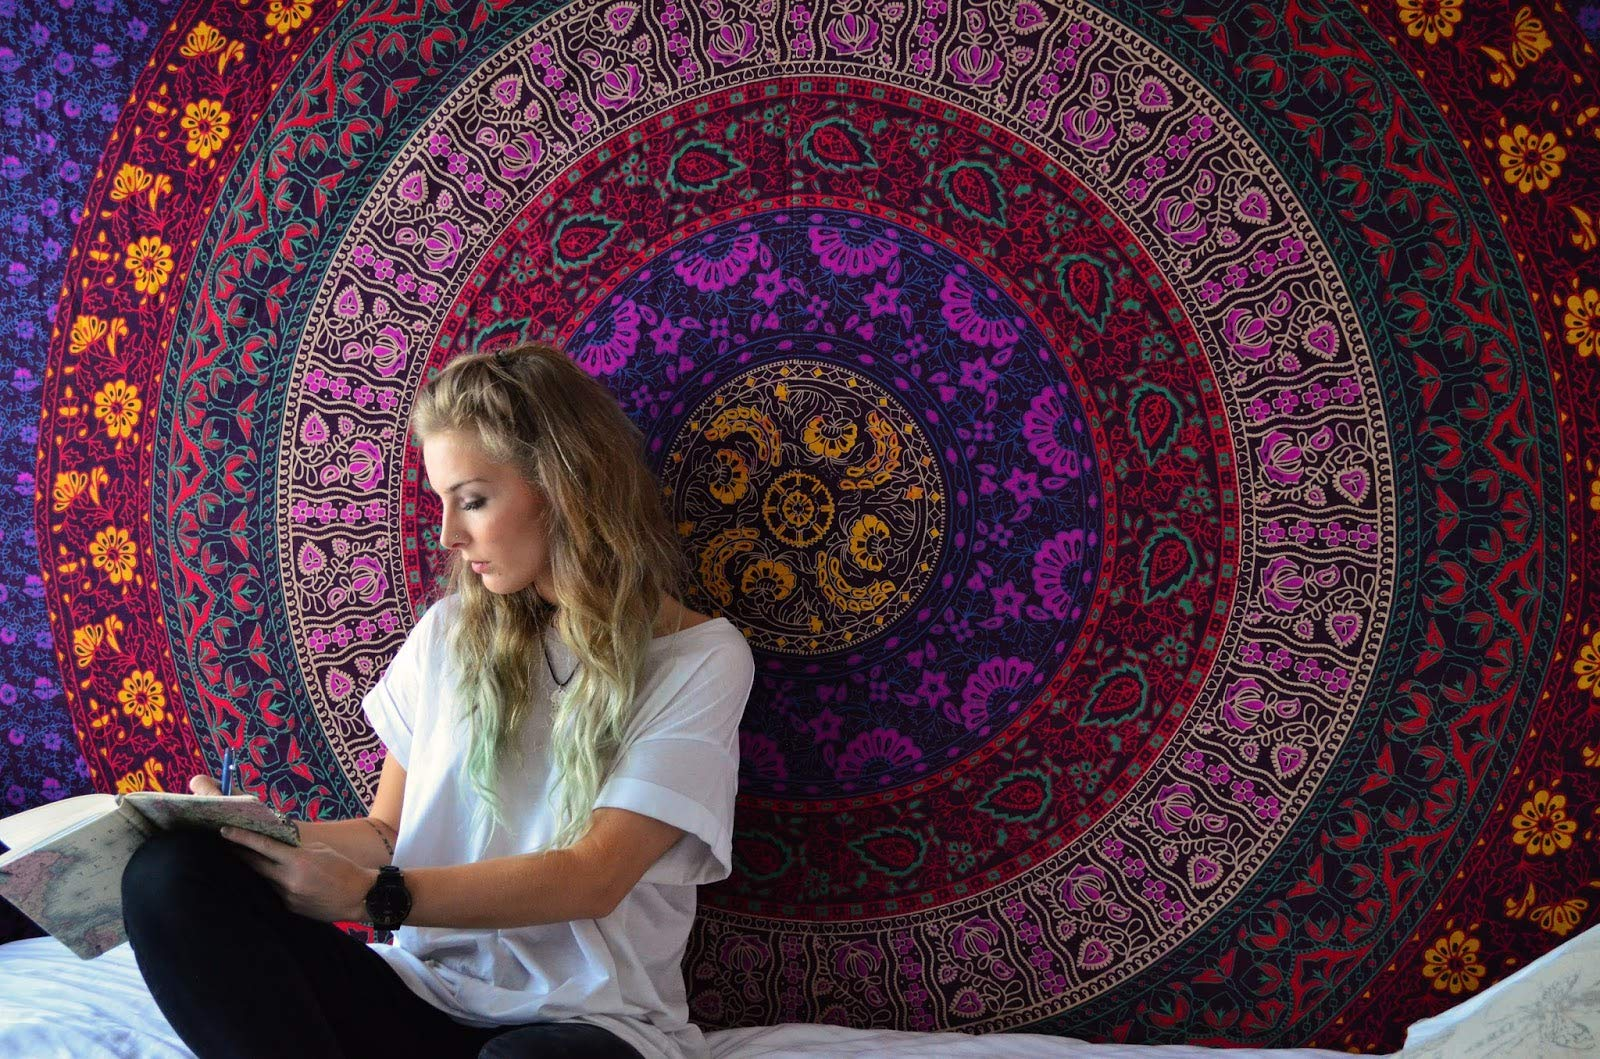 RAJRANG Large Hippie Tapestry - Mandala Bohemian Tapestries Indian Dorm Decor Psychedelic Tapestry Wall Hanging Ethnic Decorative Urban Tapestry